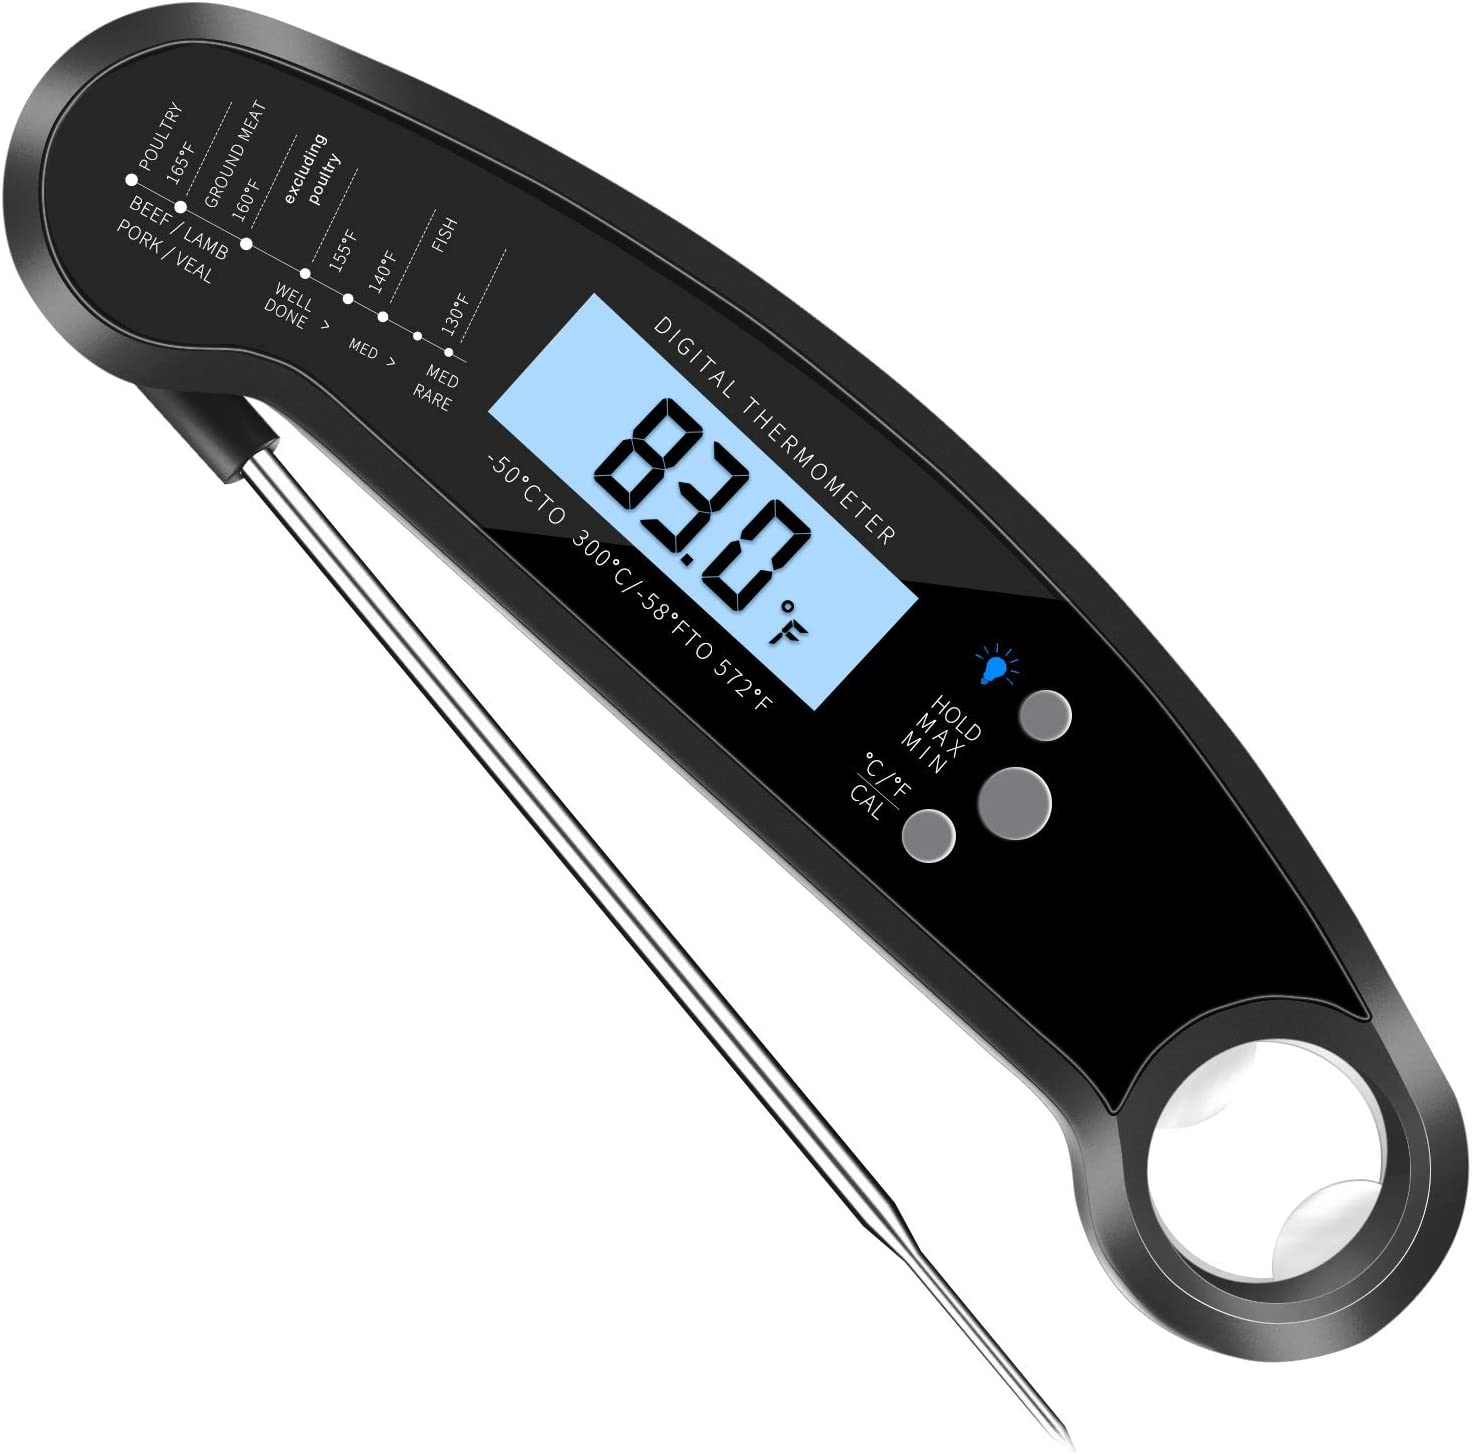 BBQ Thermometer Instant Read Meat Thermometer Turkey Thermometer with Large Backlit LCD Display and Auto-Off Function,Ideal for Kitchen Cooking,BBQ Grill,BBQ Smoker,Oven,Steak,Turkey,Candy(Black)